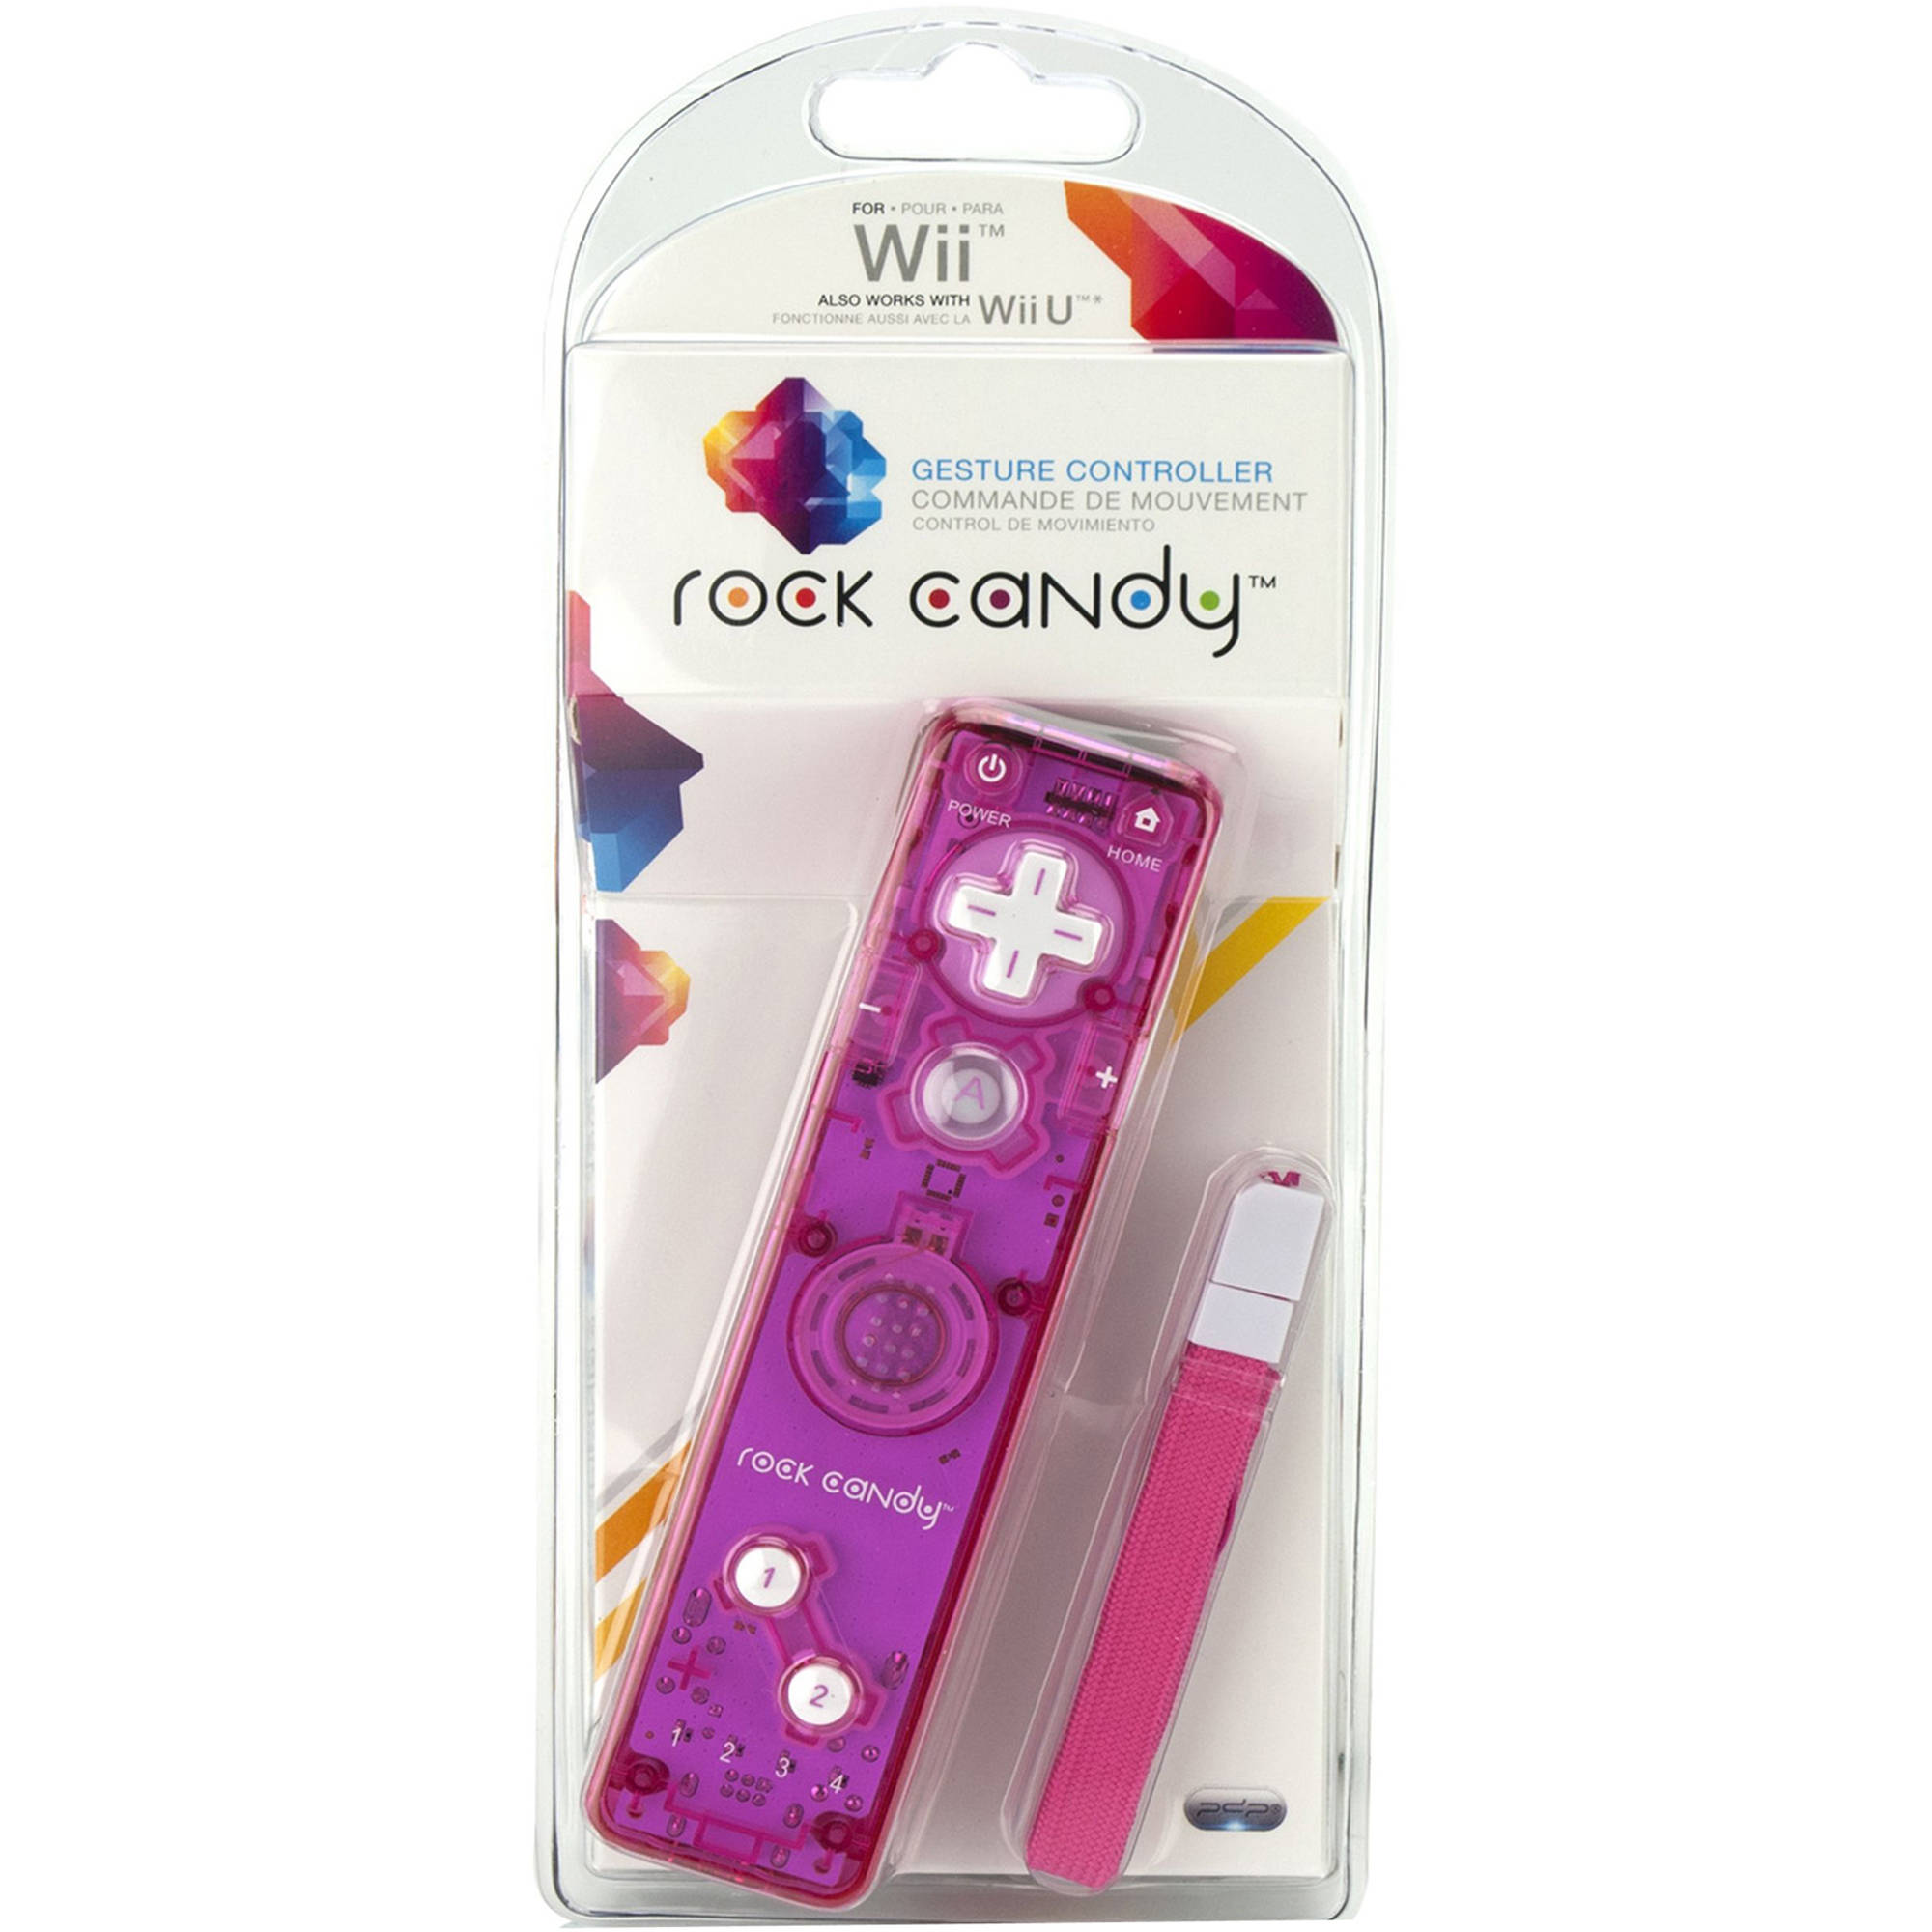 Rock Candy 8560PK Gesture Controller, Pink (Wii) by PDP